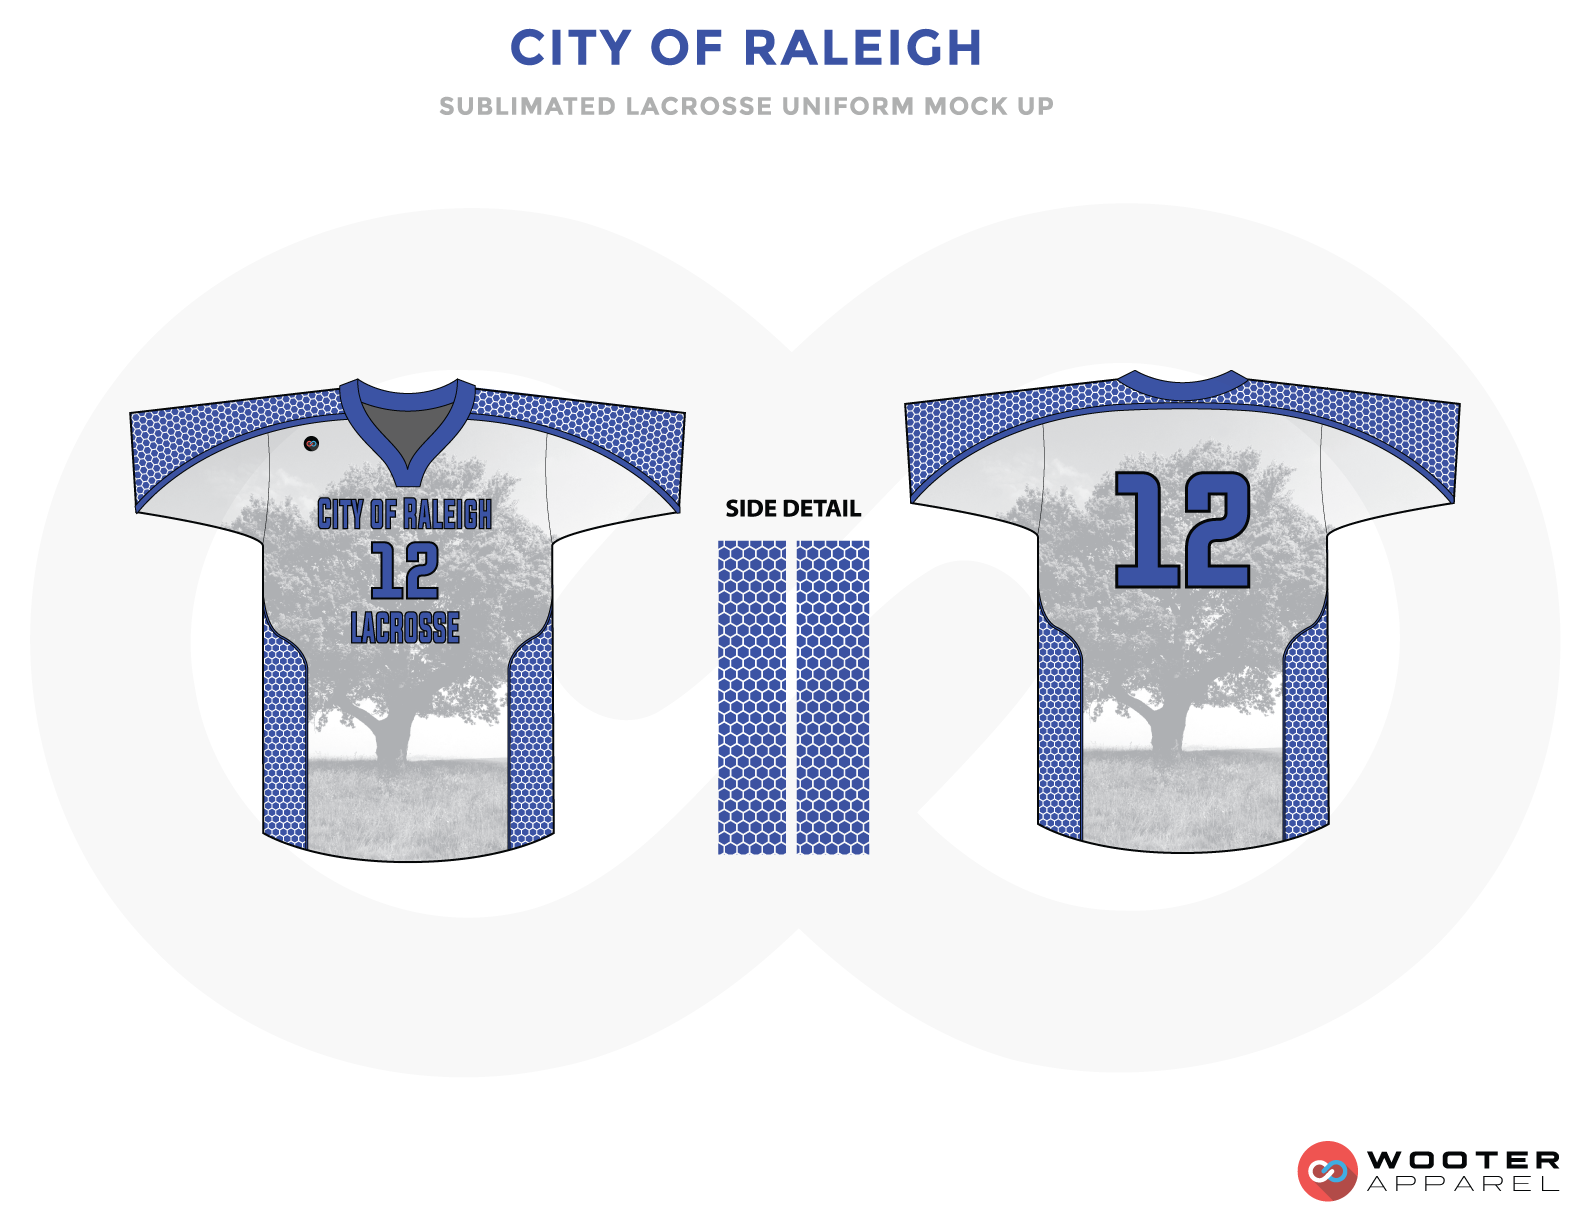 City Of Raleigh Blue and Gray White Lacrosse Uniforms, Jerseys